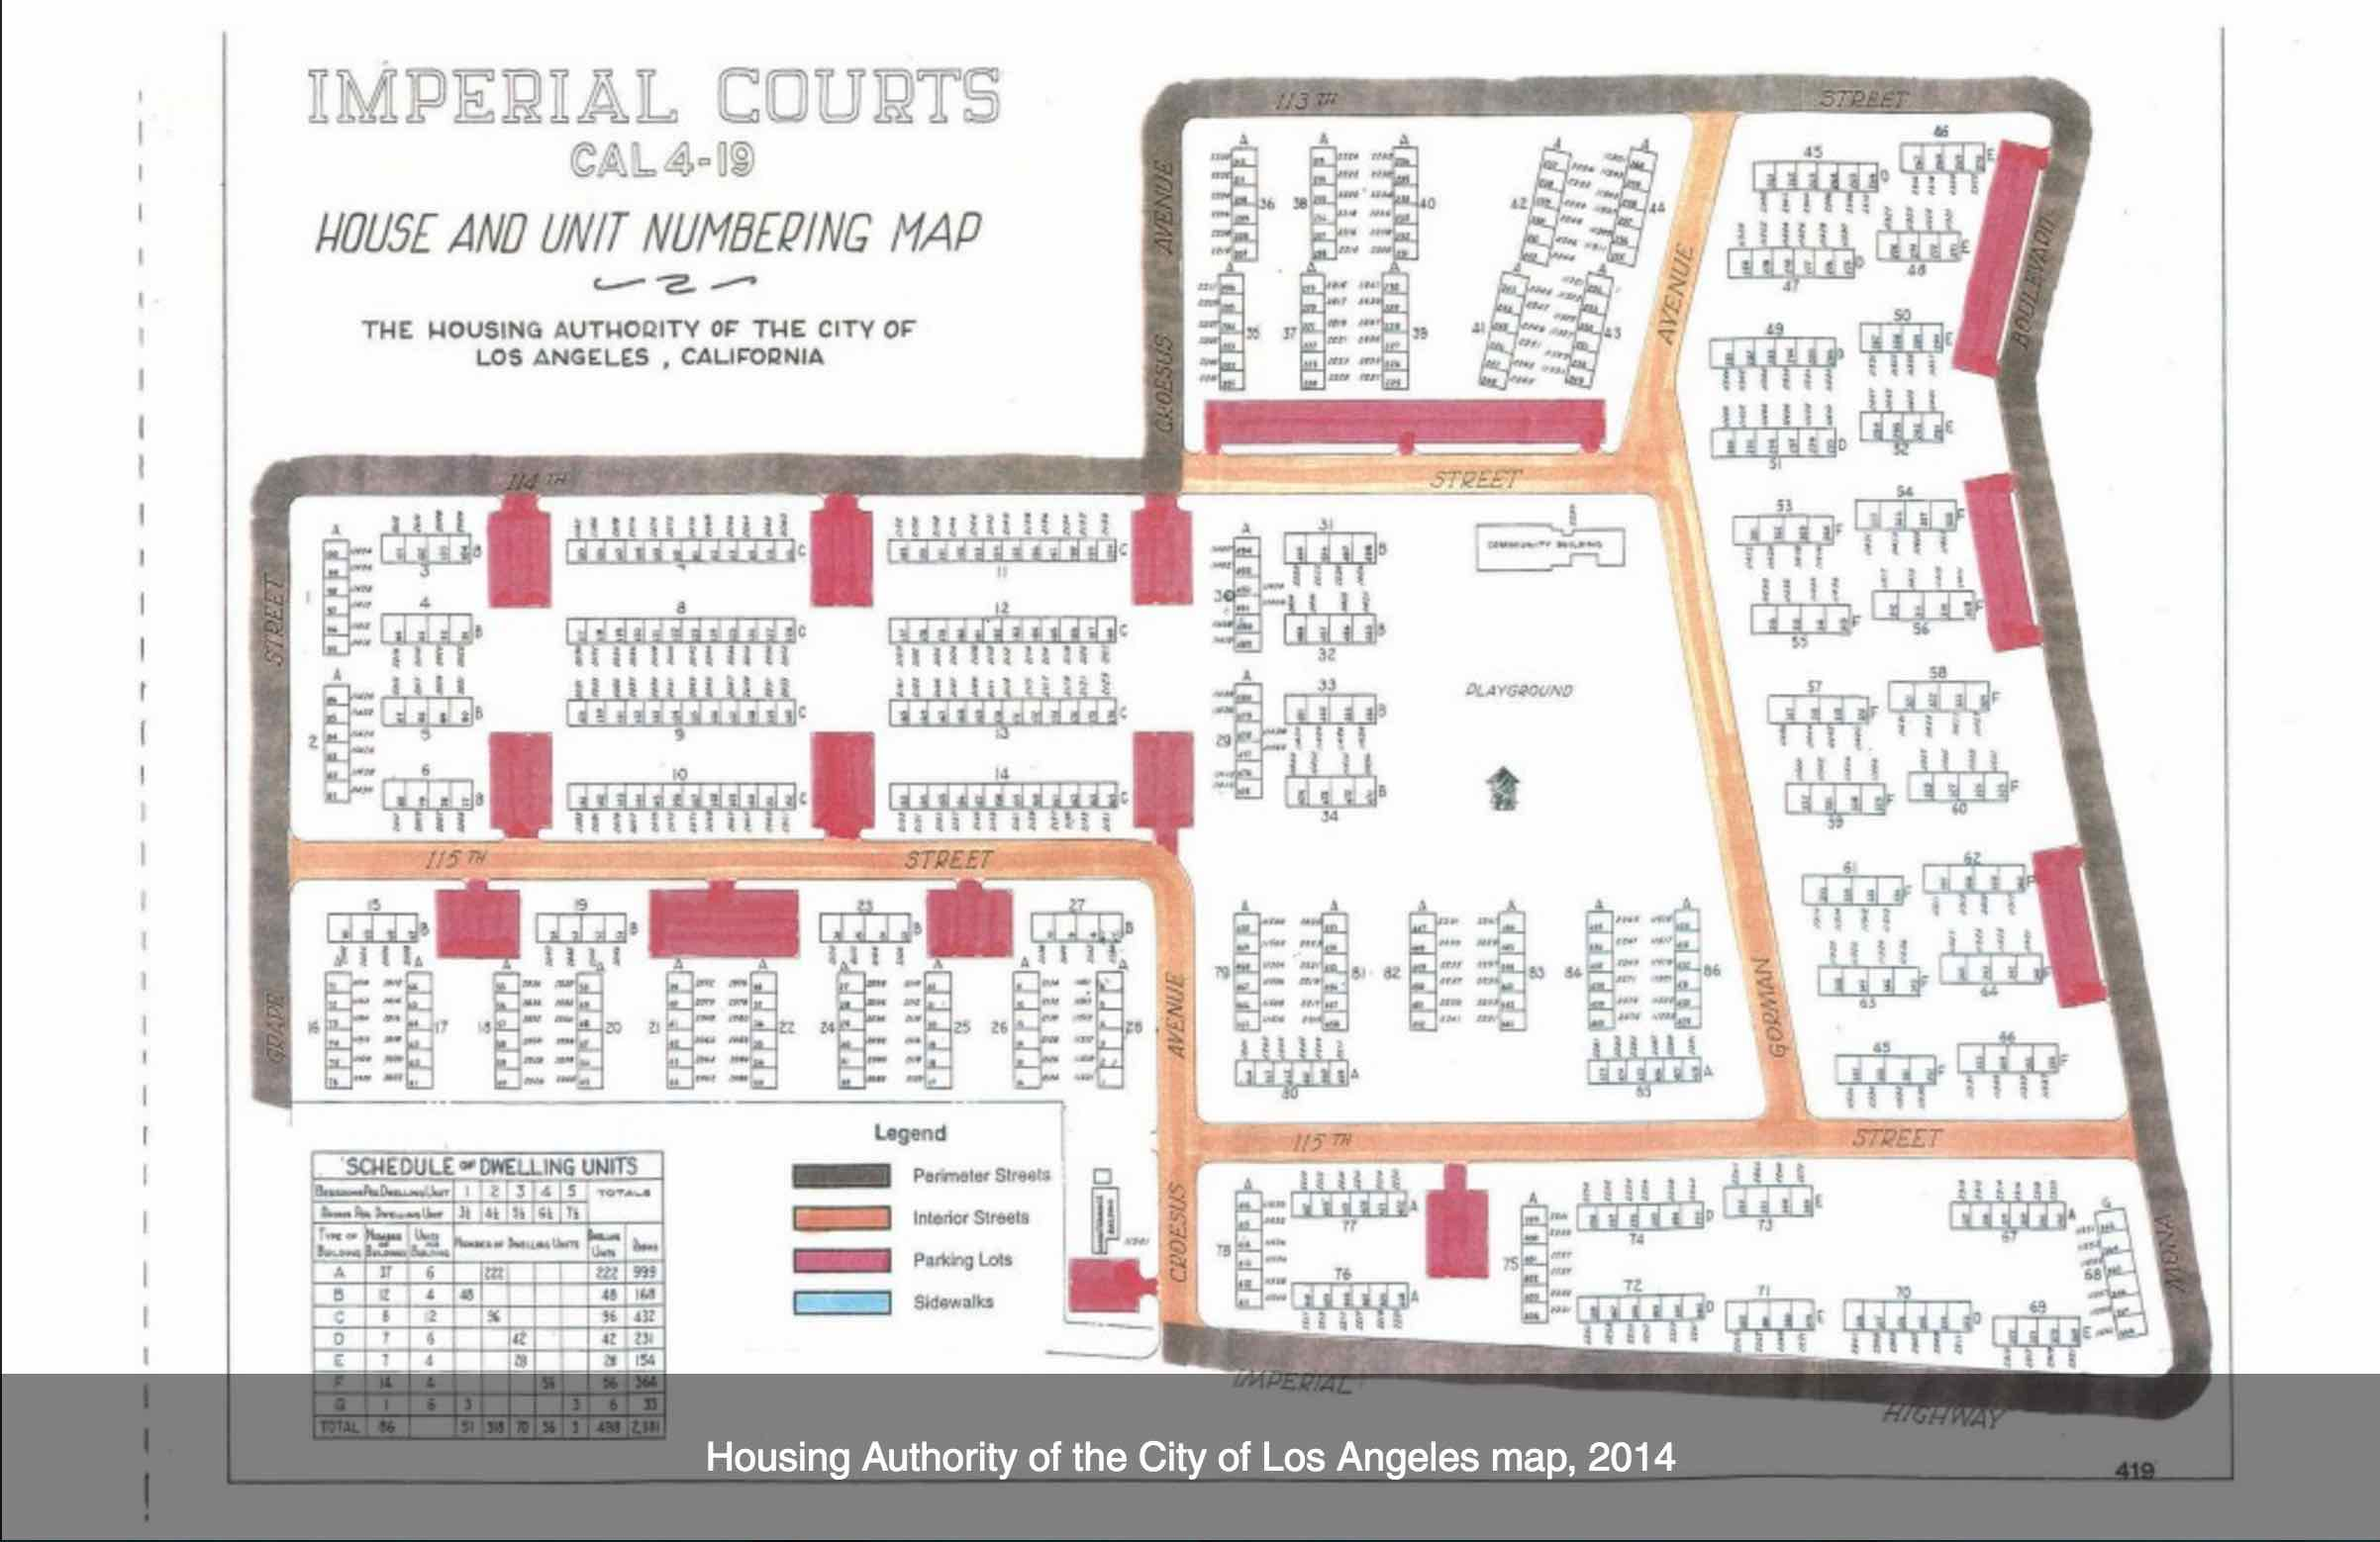 Imperial Courts